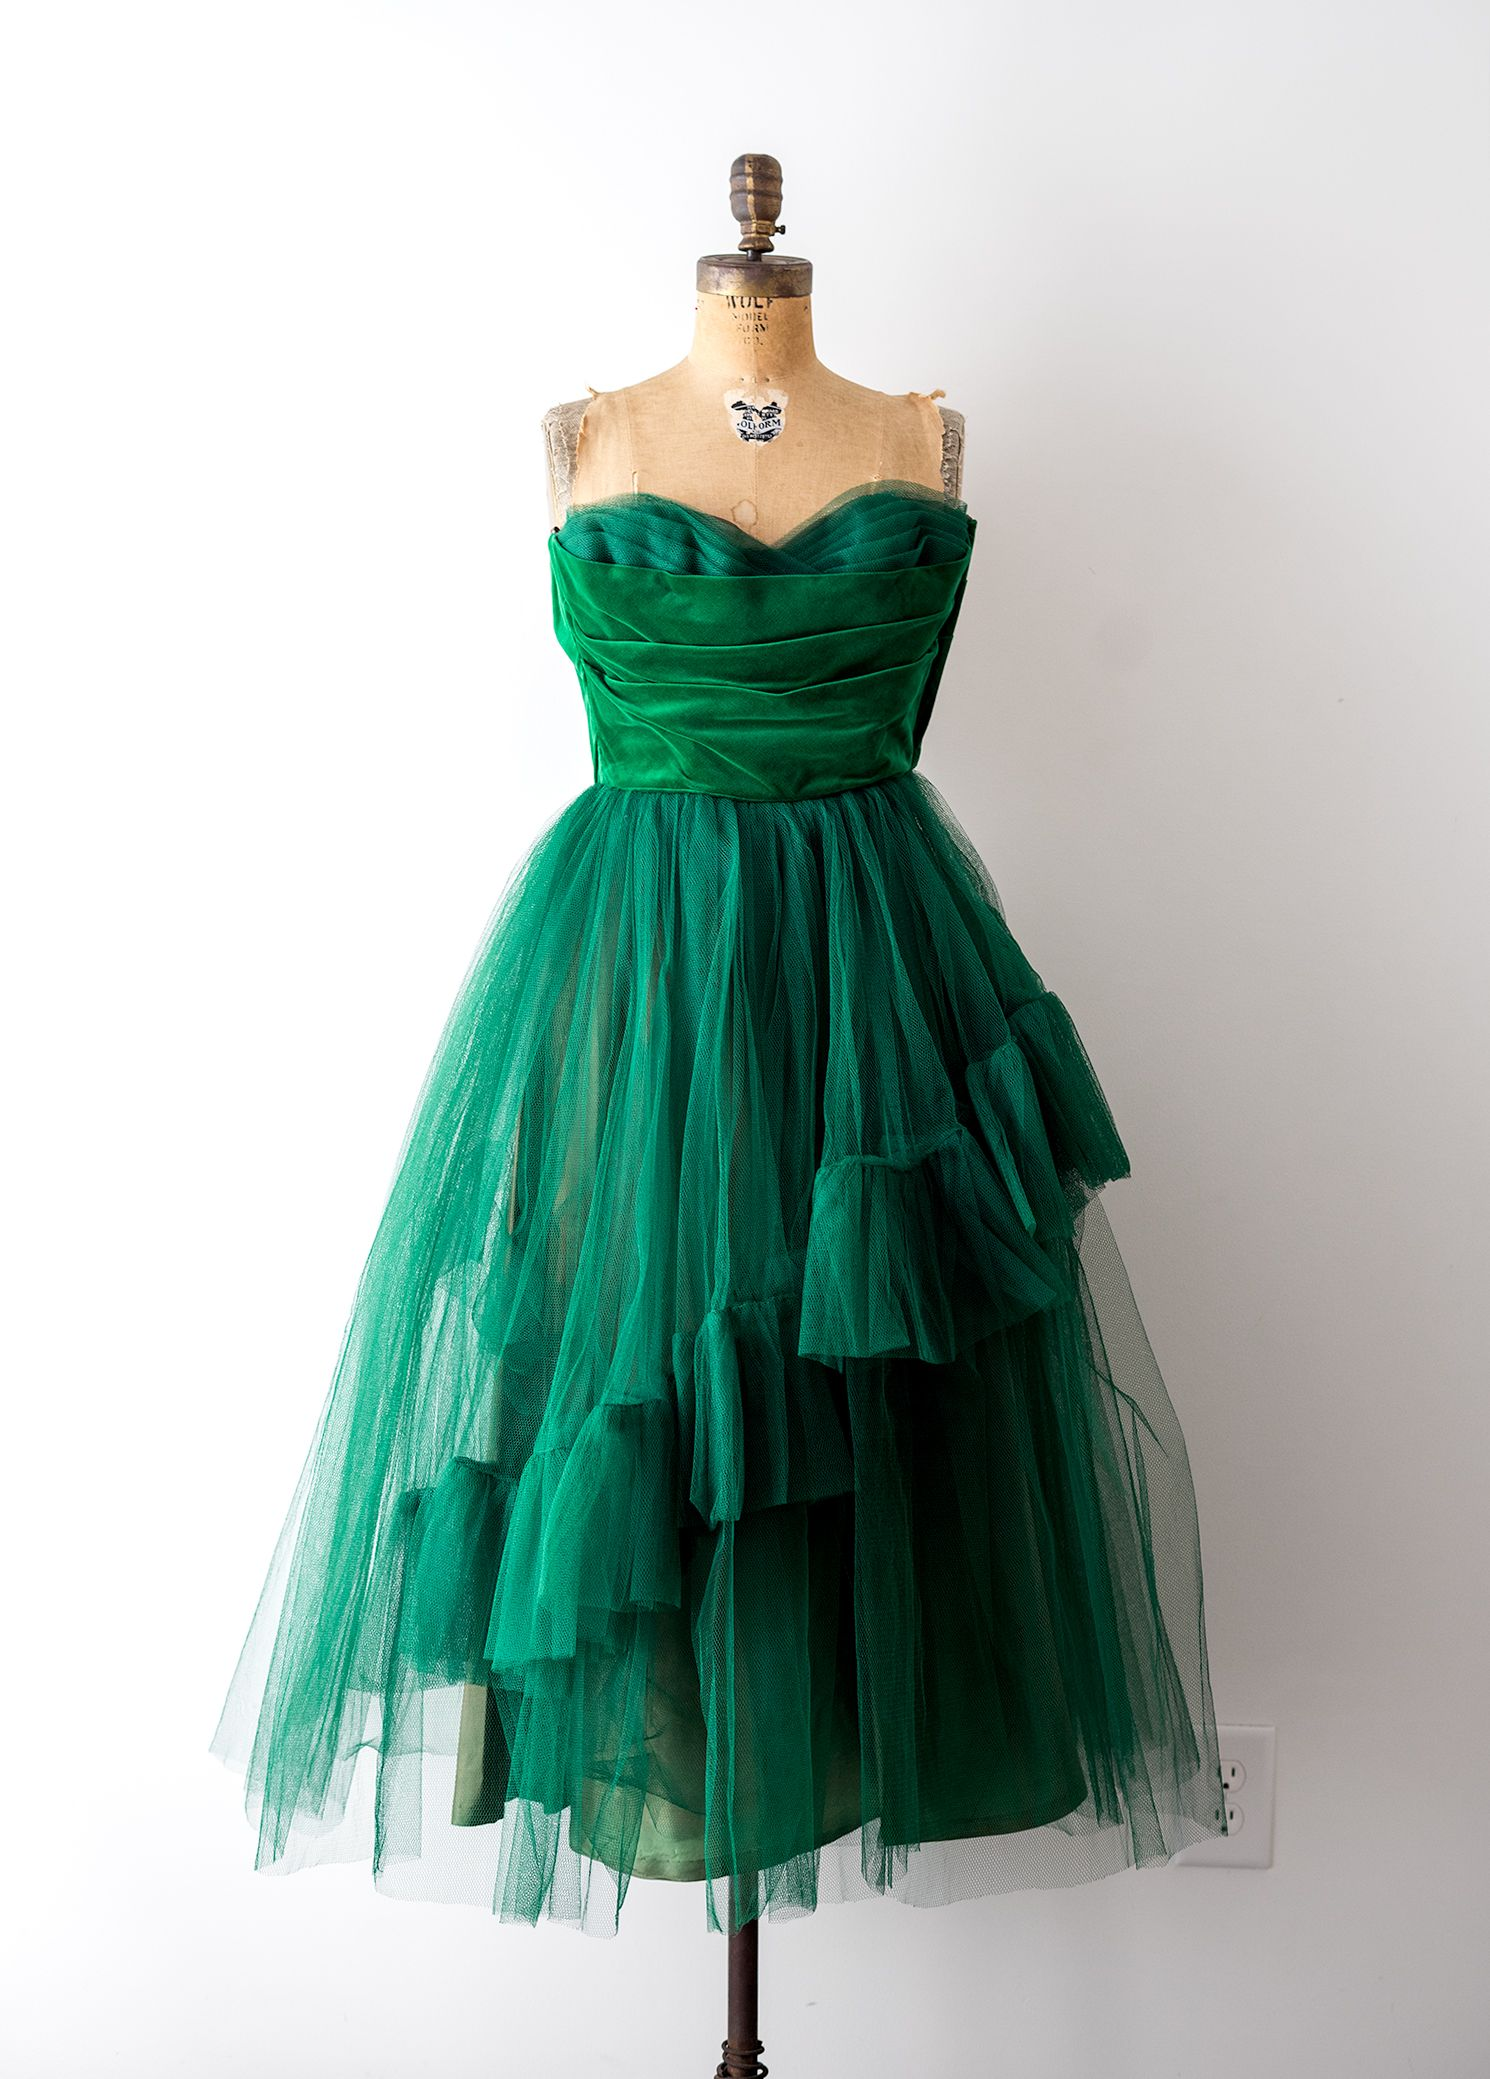 Vintage 40s Green Dress 1940s Party Dress Tulle Velvet Etsy Dresses Tulle Party Dress Strapless Dress Formal [ 2079 x 1490 Pixel ]